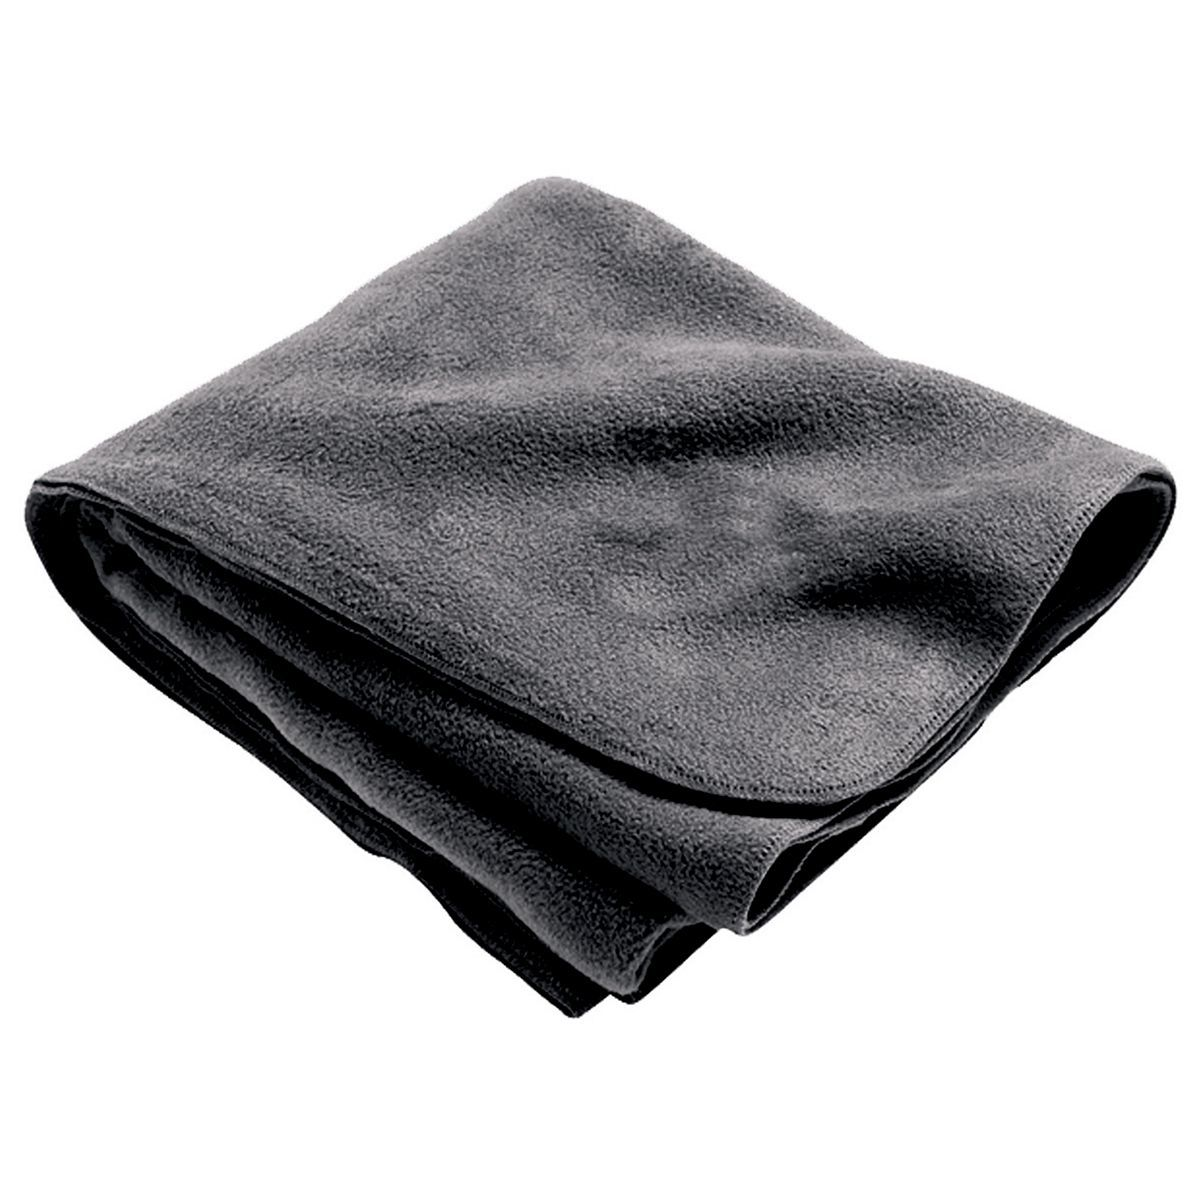 Stadium Blanket - CHARCOAL HEATHER